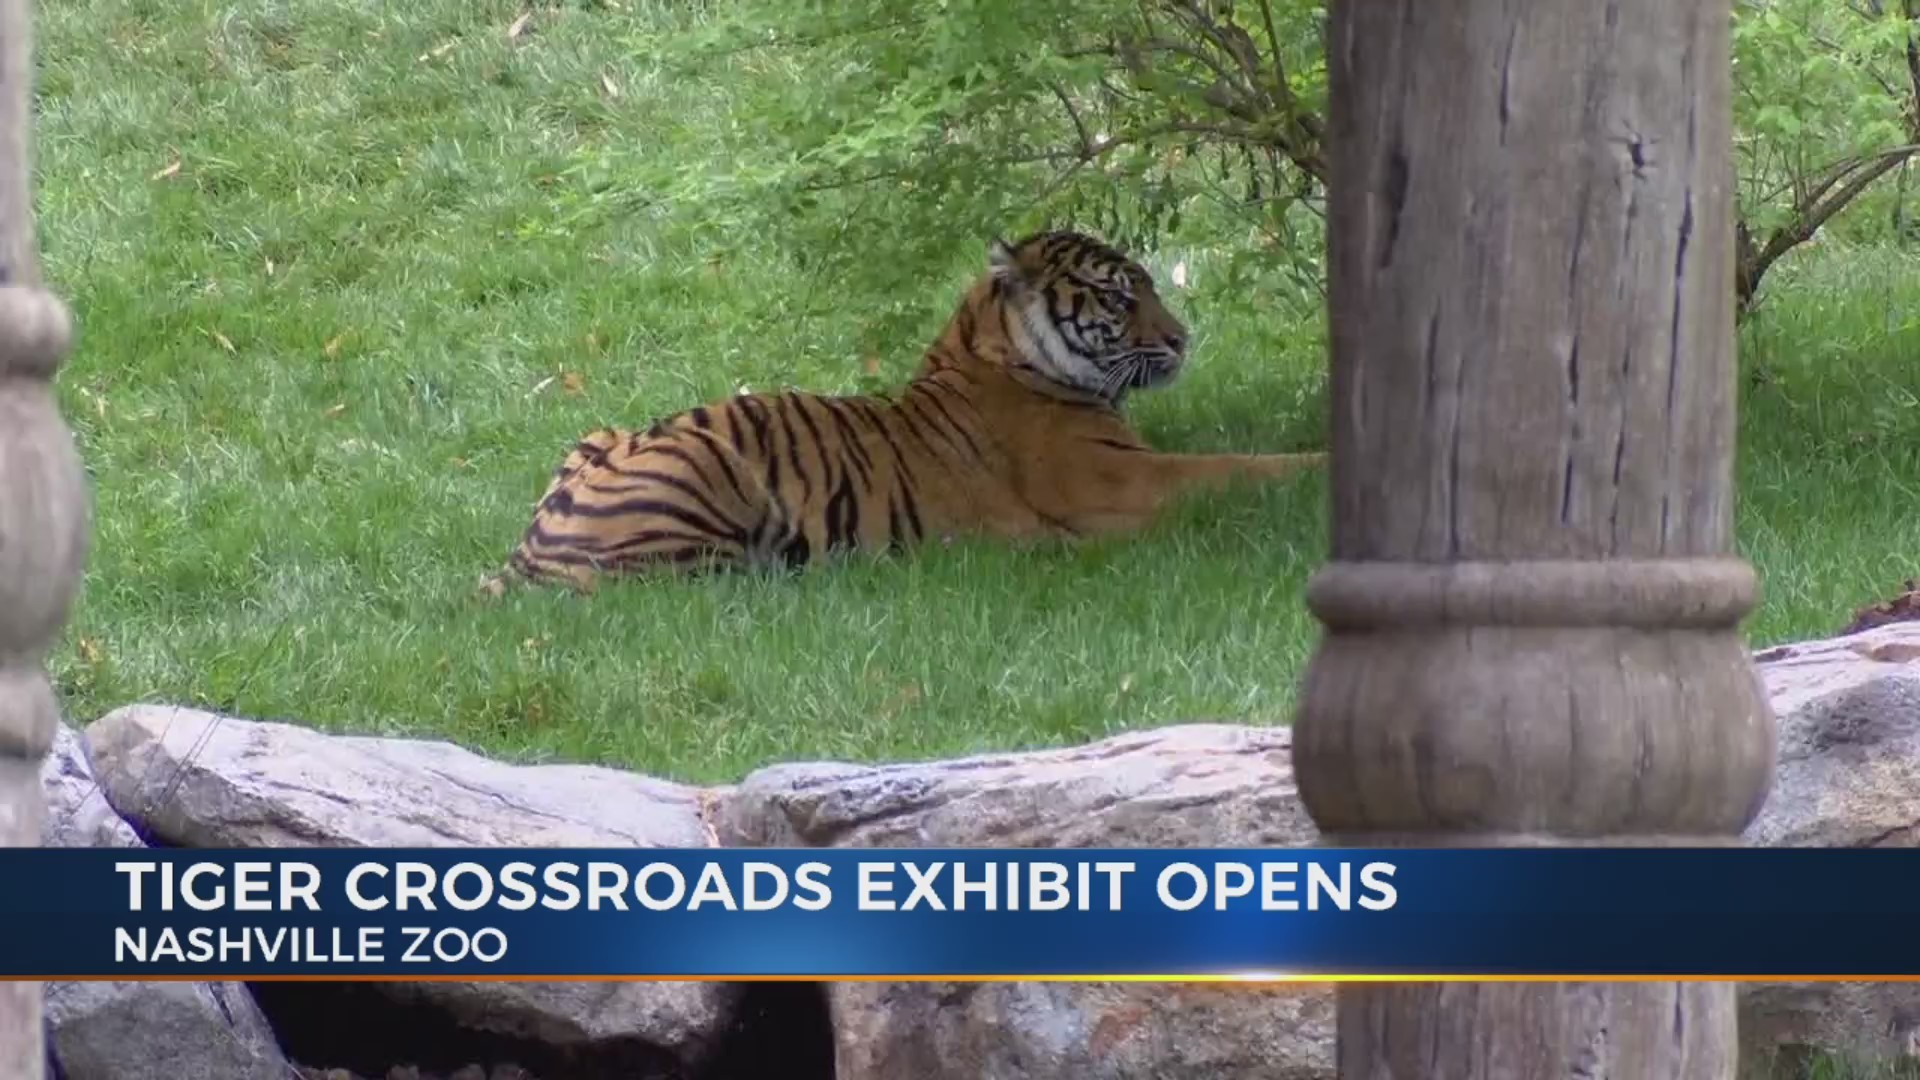 Nashville Zoo unveils new tiger exhibit